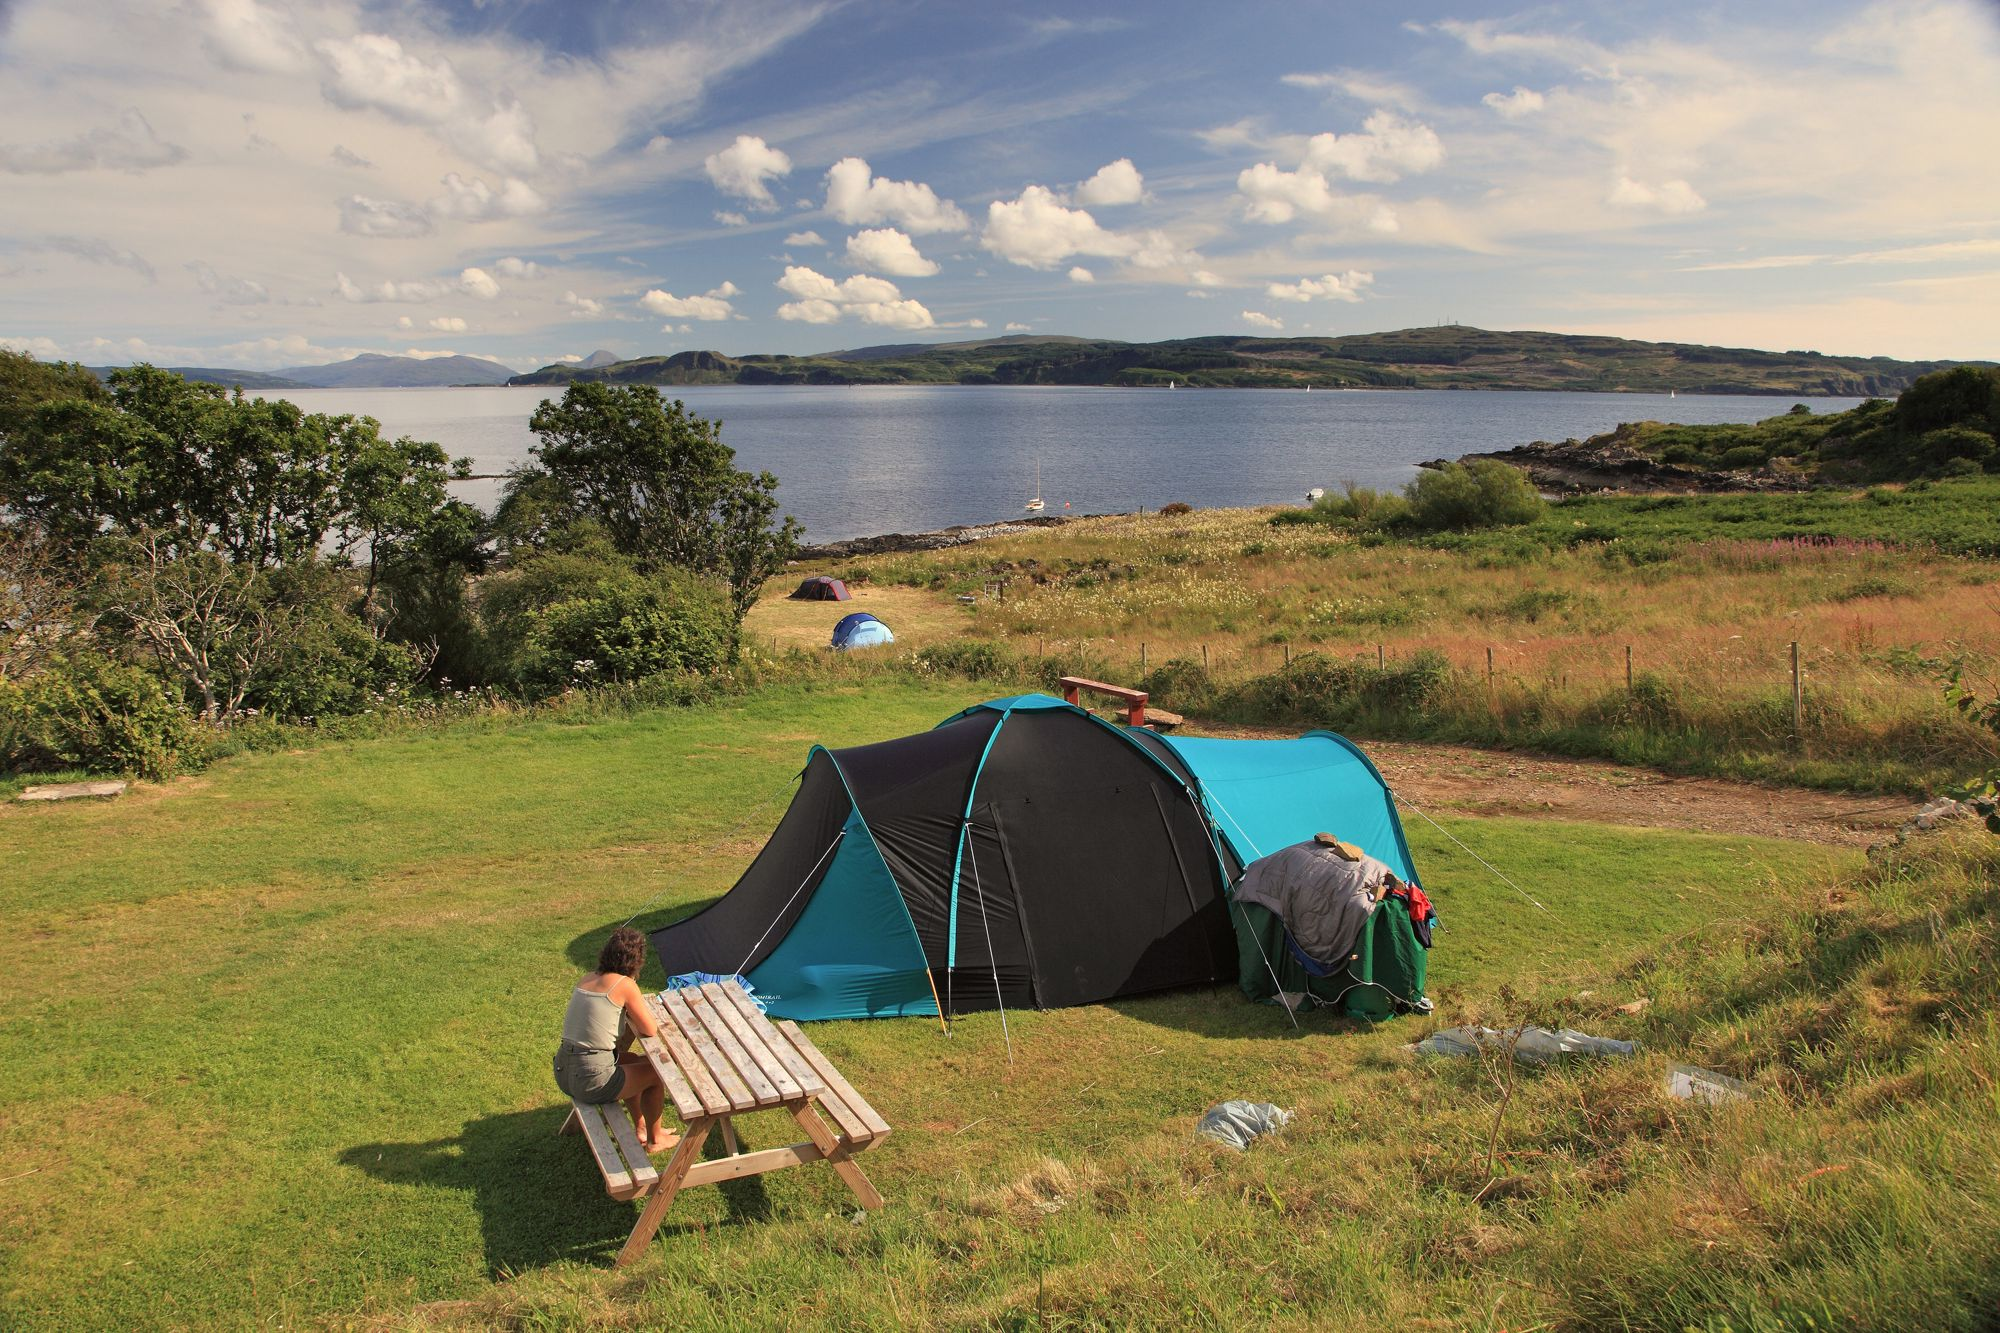 C&sites on the West Coast of Scotland & Campsites in Scotland u2013 The top-rated campsites in Scotland u2013 Cool ...